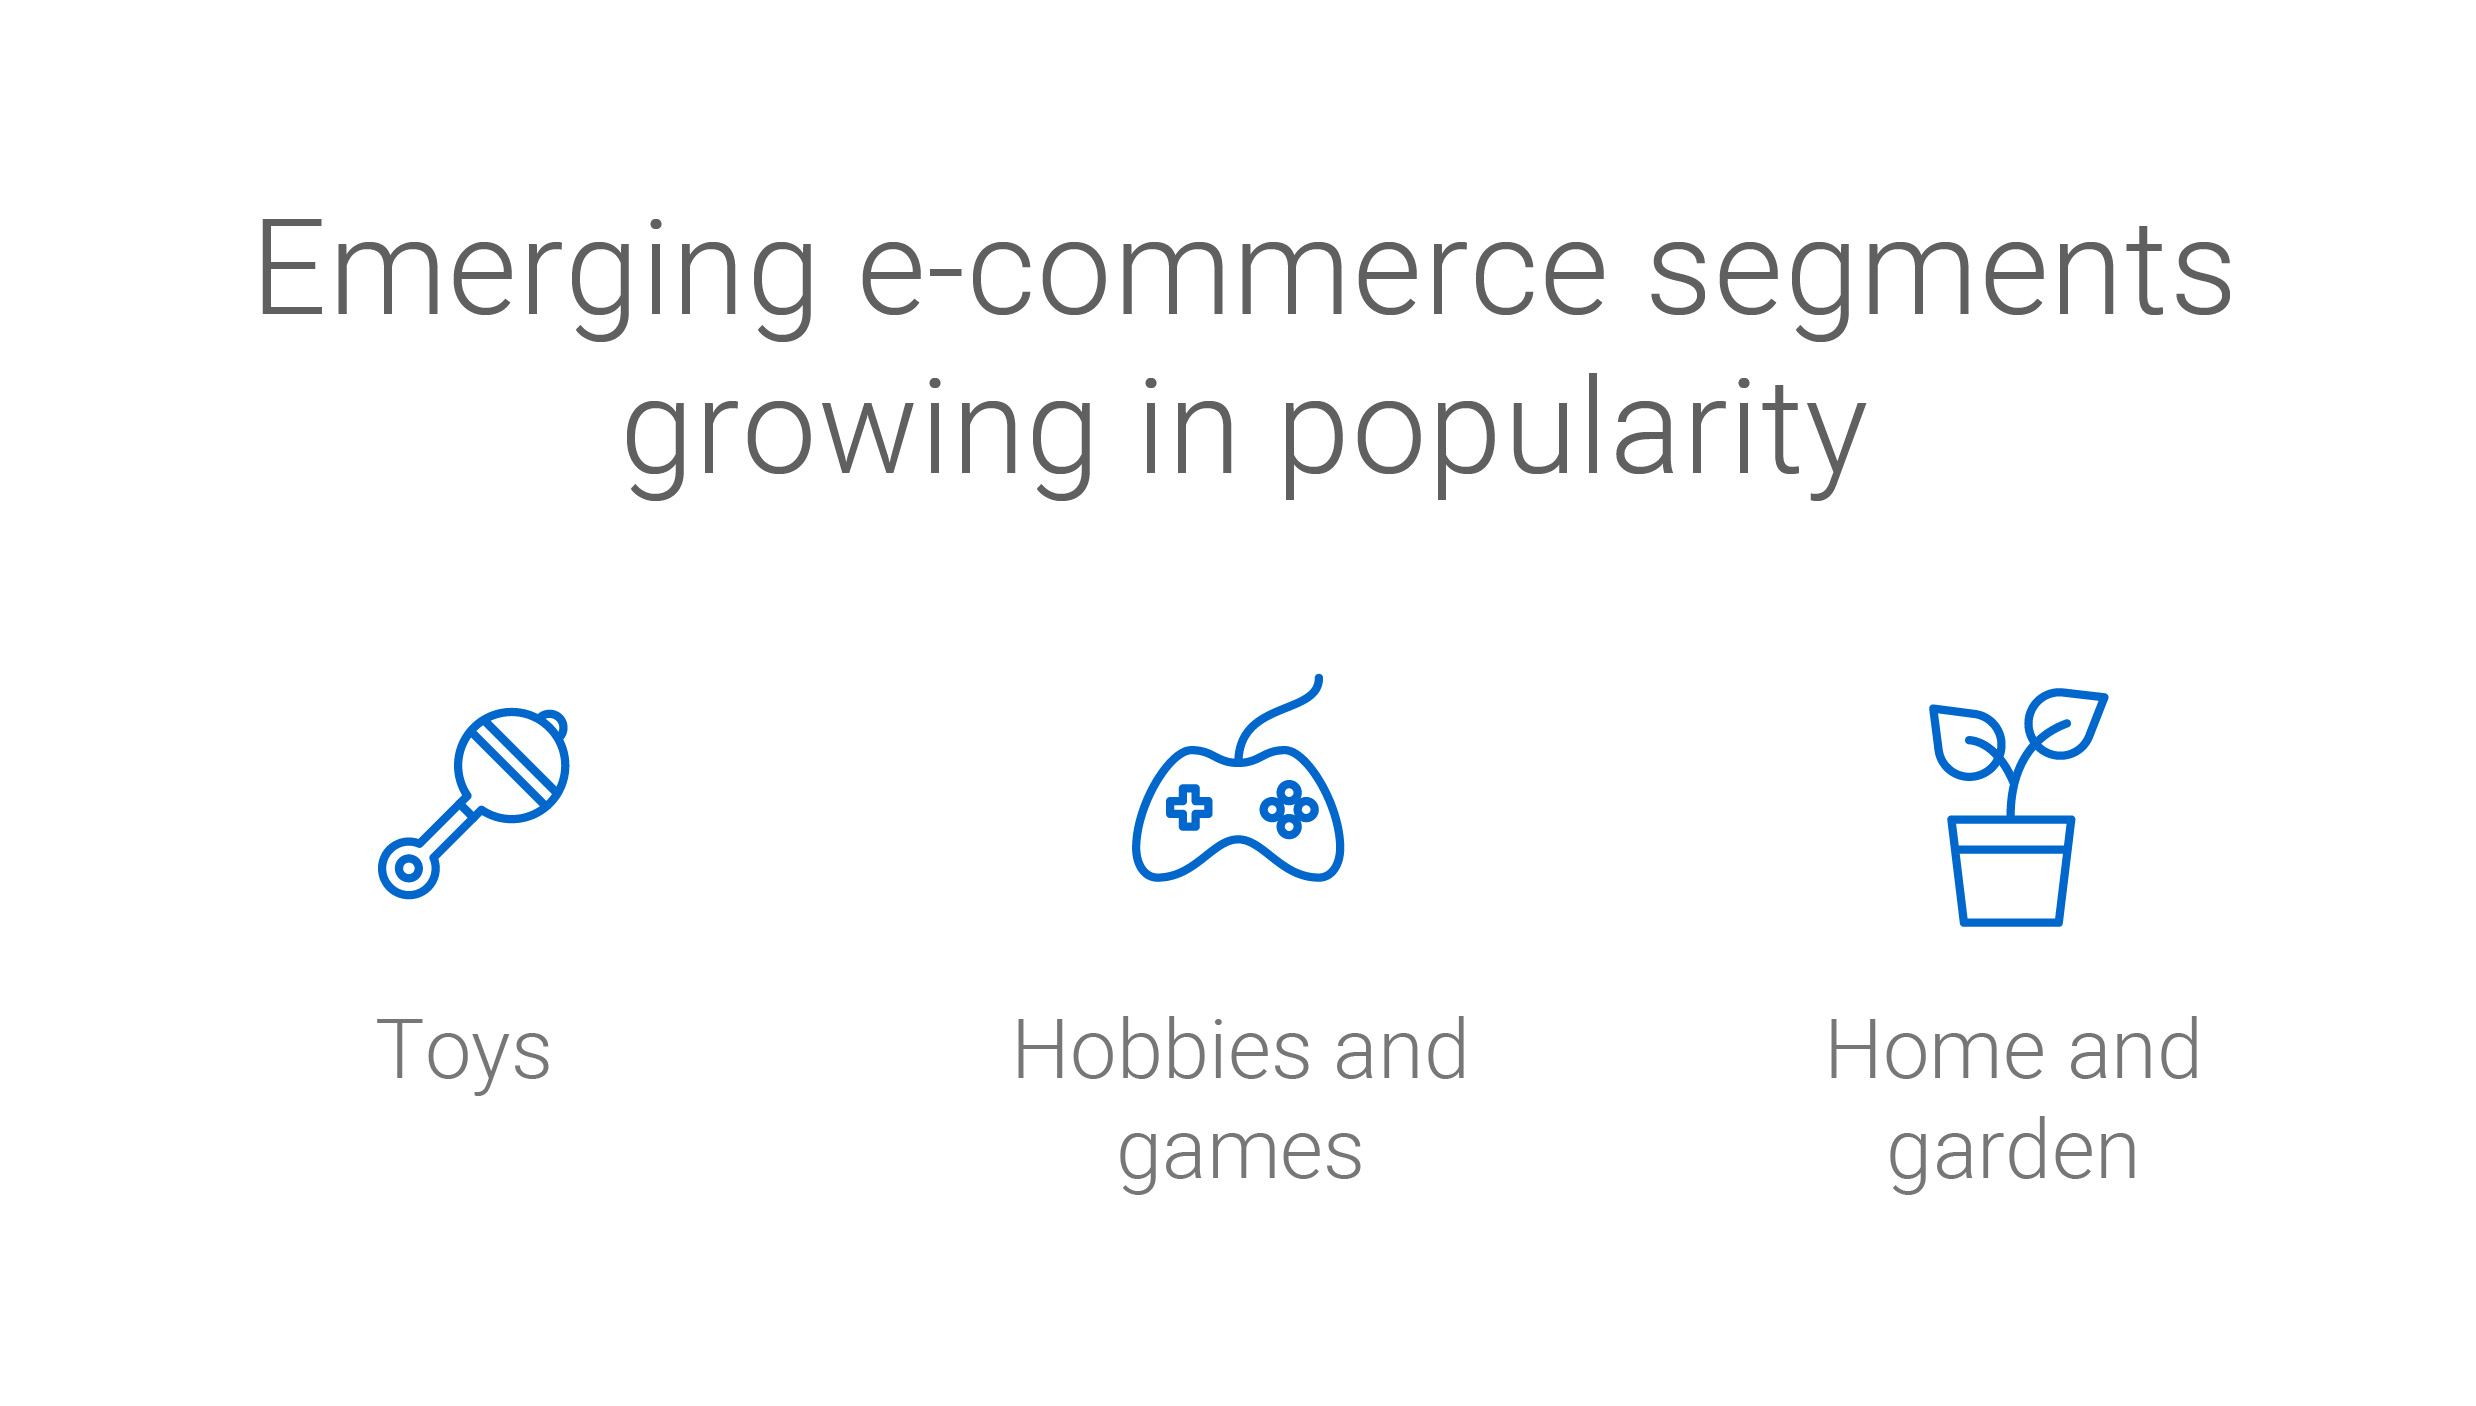 Infographic: Emerging e-commerce segments growing in popularity: toys, hobbies and games as well as home and garden.